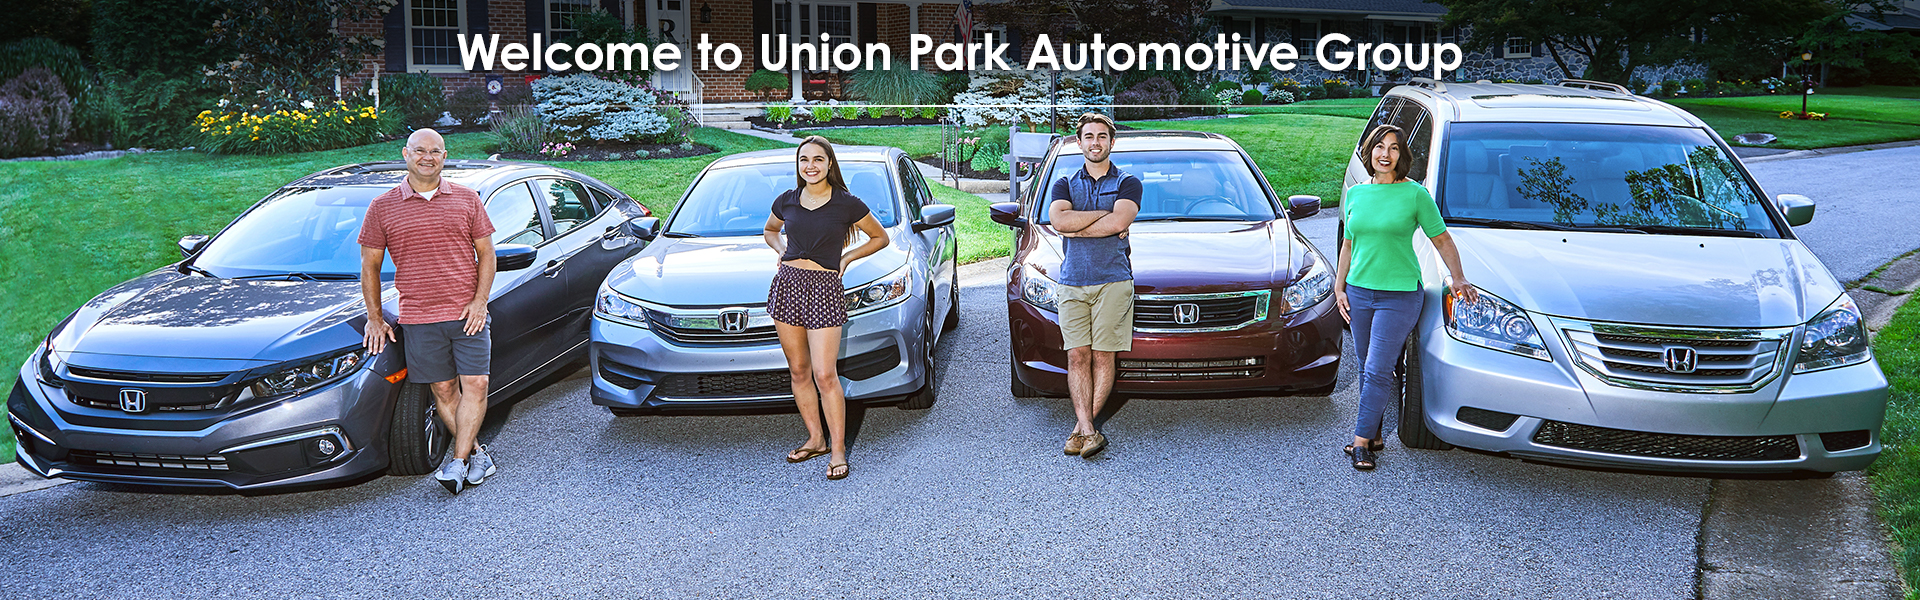 Welcome to Union Park Automotive